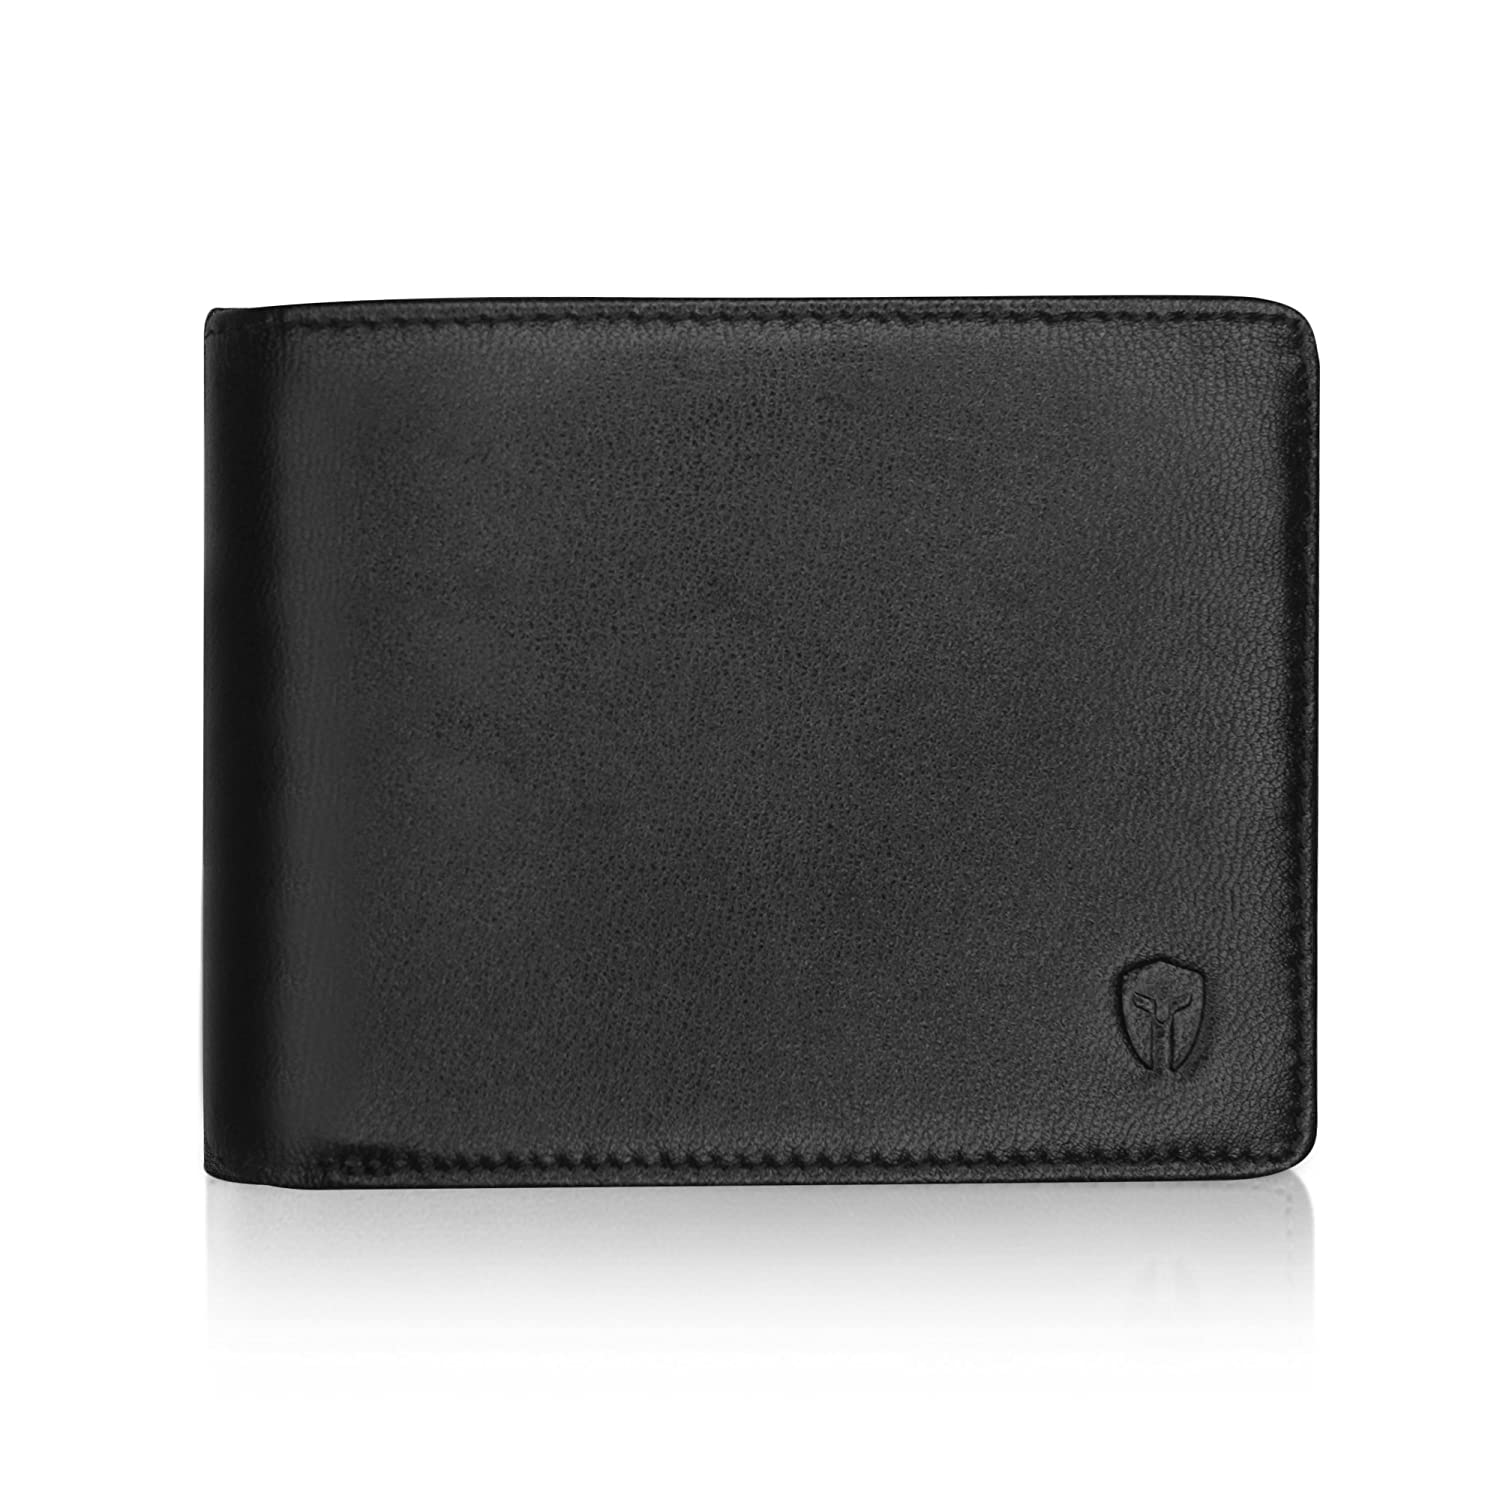 Bryker Hyde Executive Bifold Top Flip 2 ID Window RFID Blocking Finest Leather Digital Armor DA-02